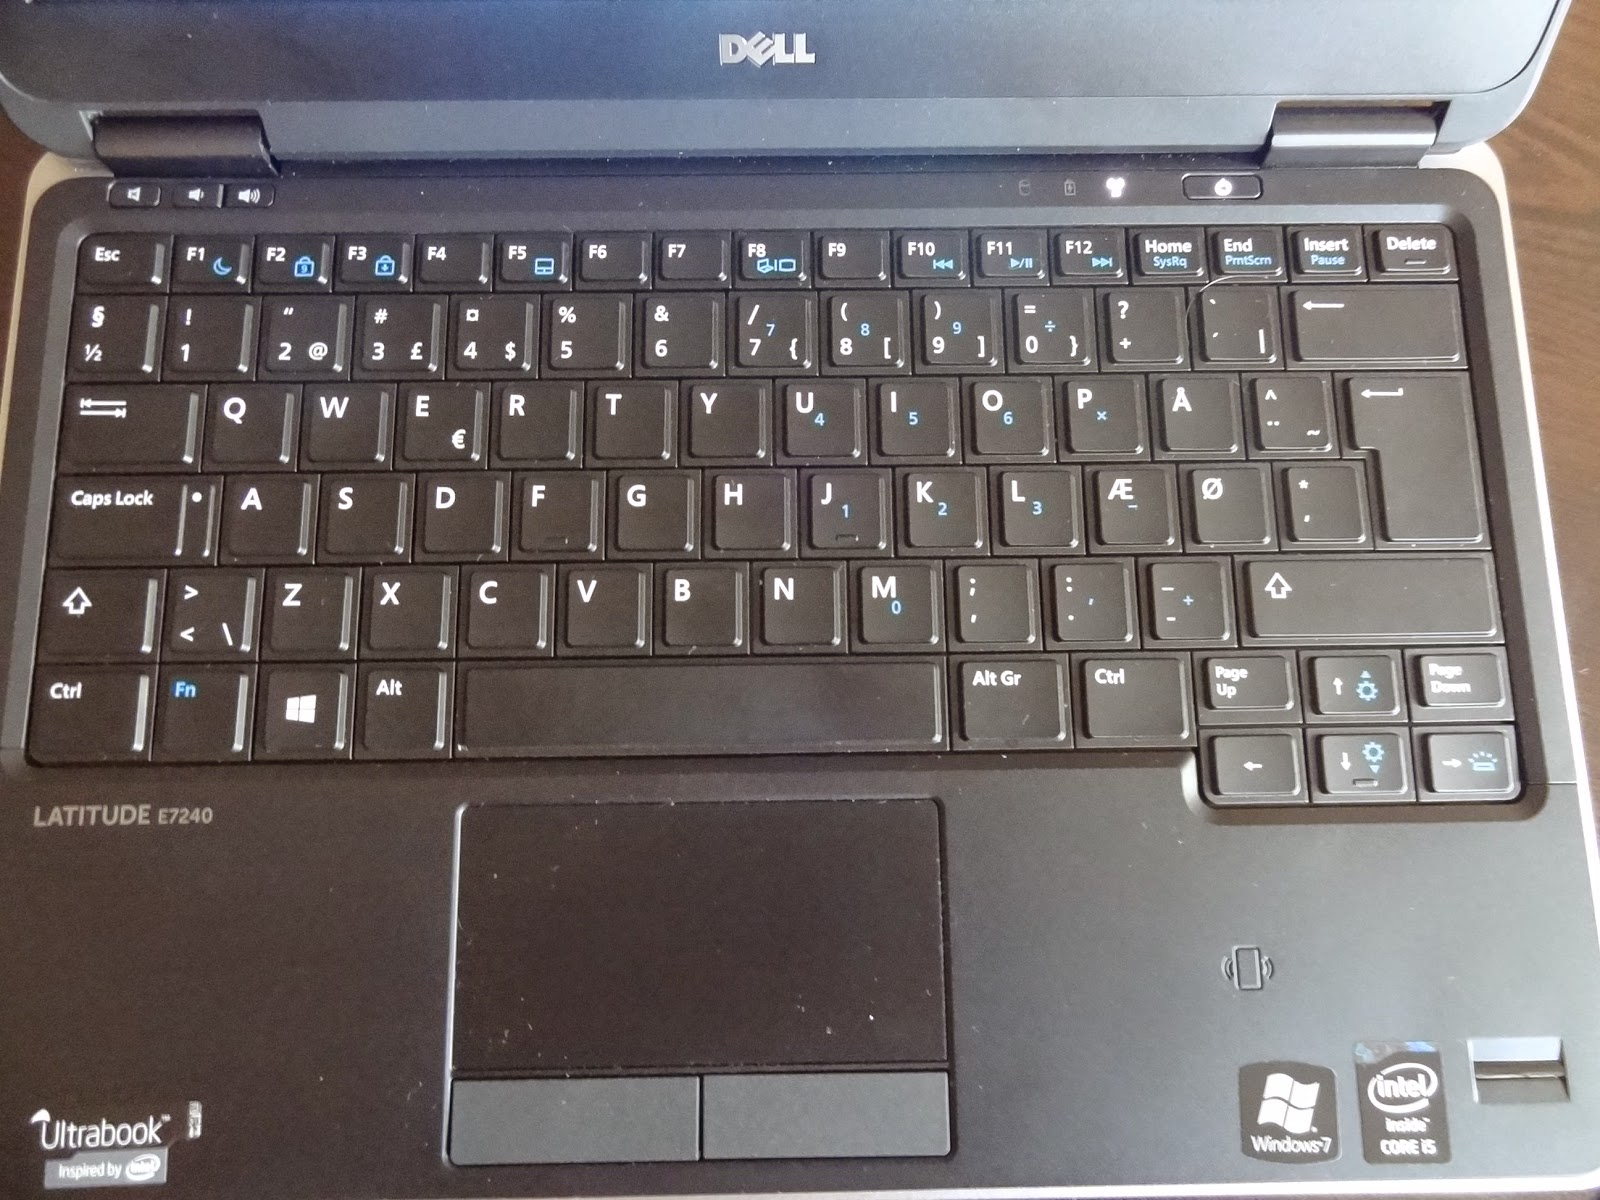 Dell Latitude E7240 touchpad